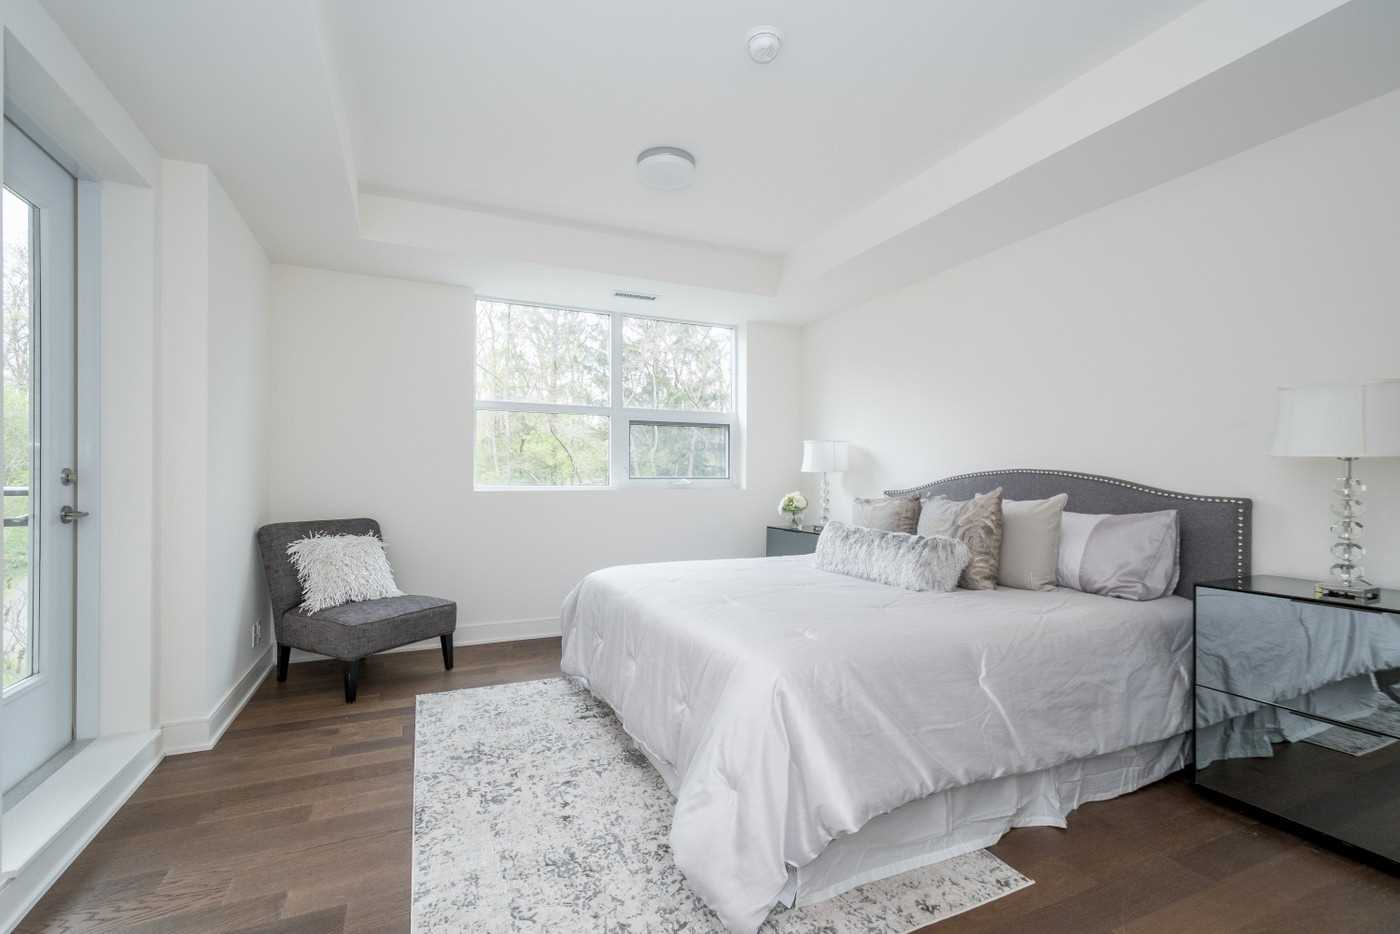 #208 - 1575 Lakeshore Rd W, Mississauga W4457281